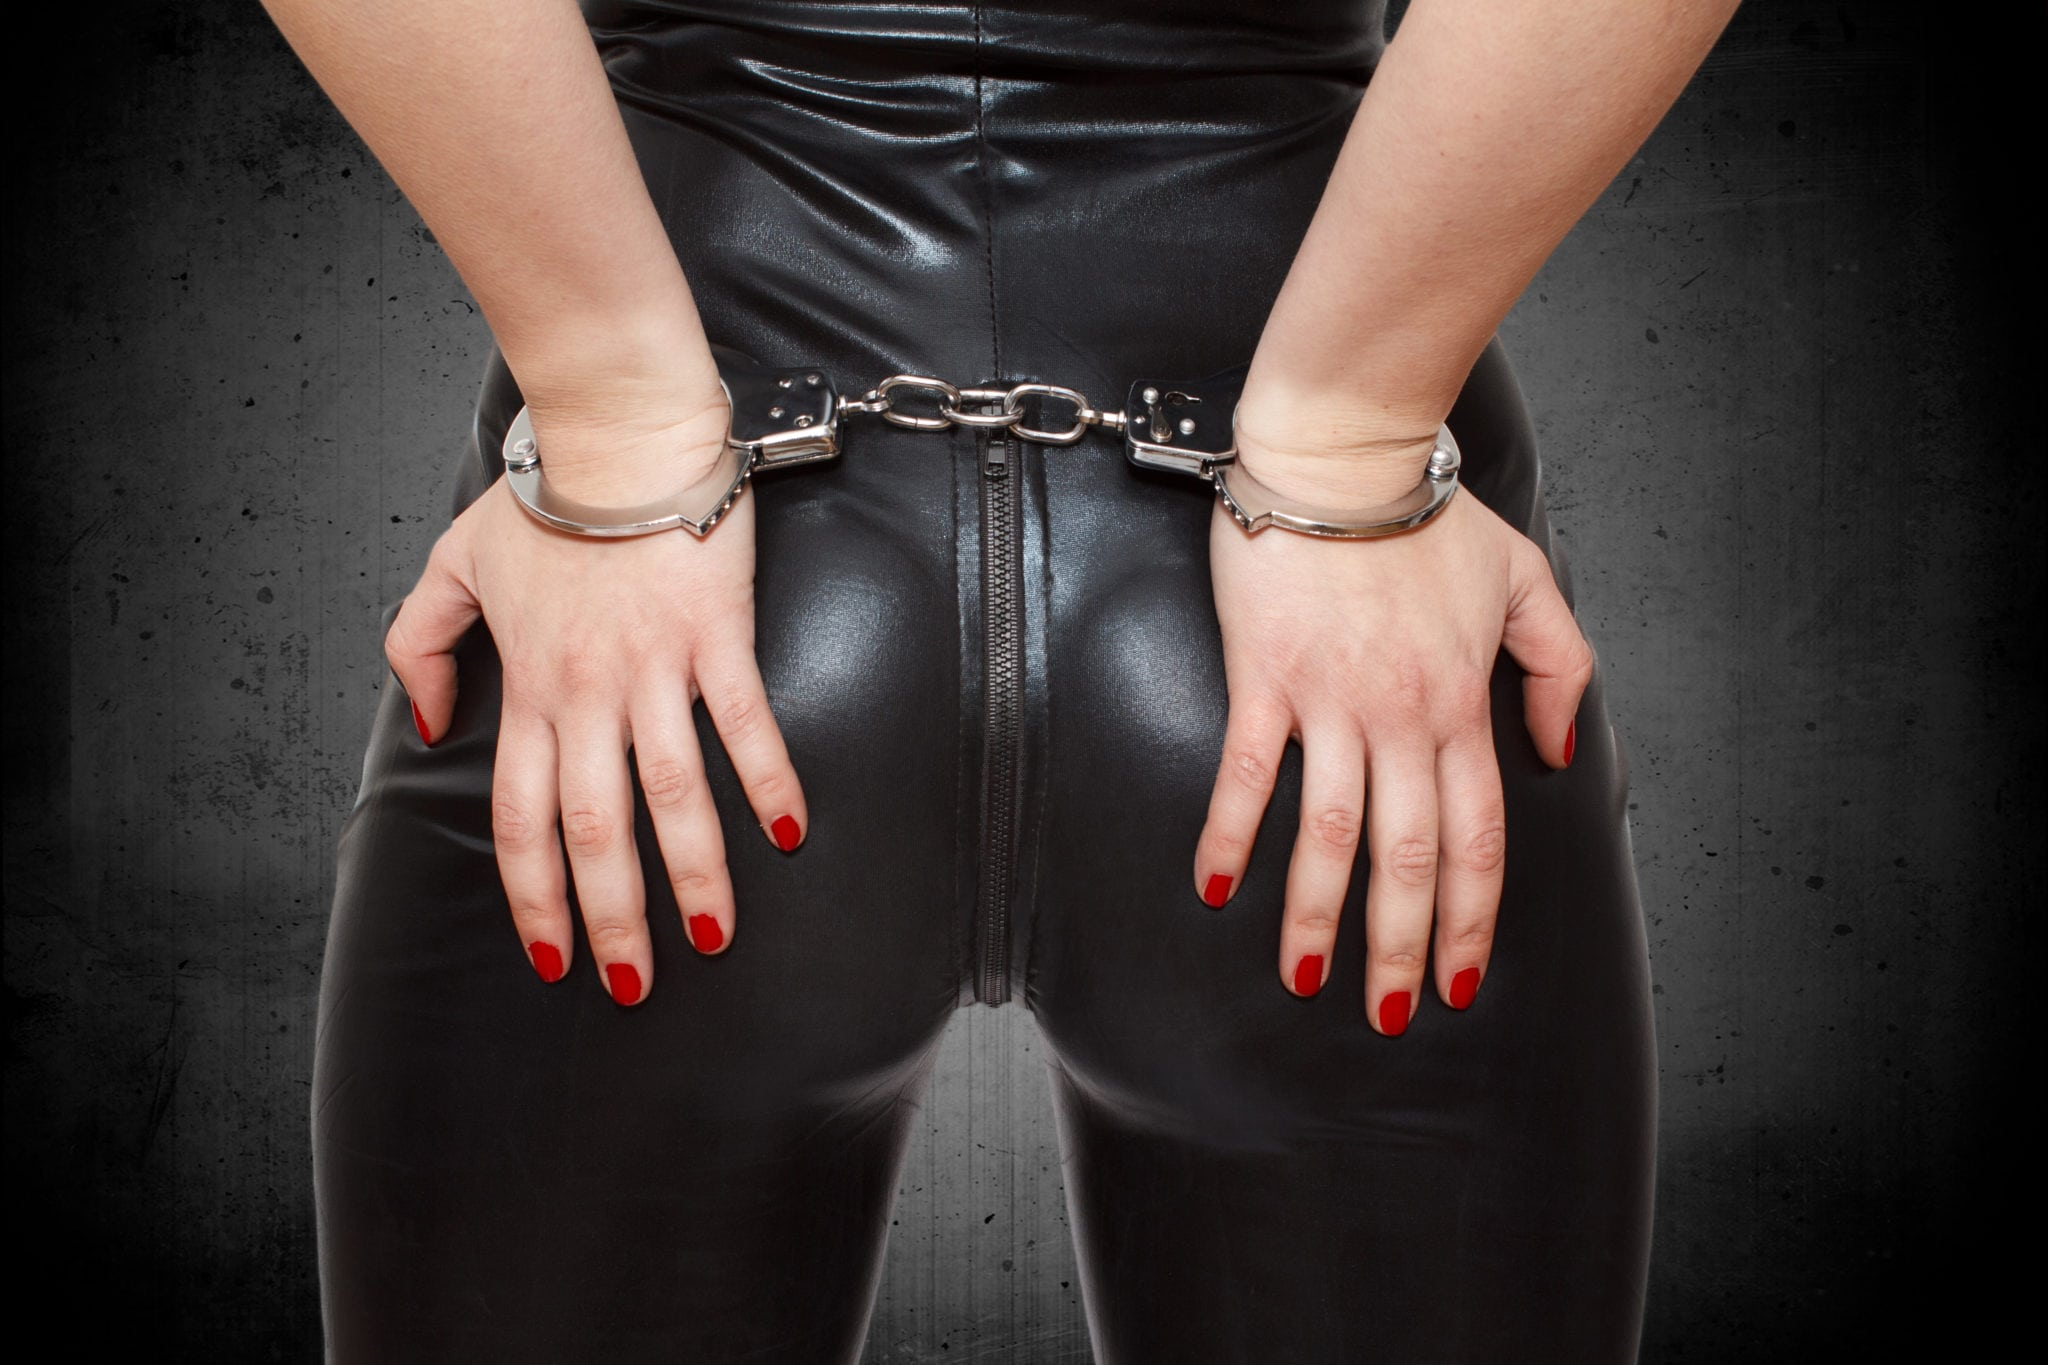 How Do I Start BDSM In My Relationship?